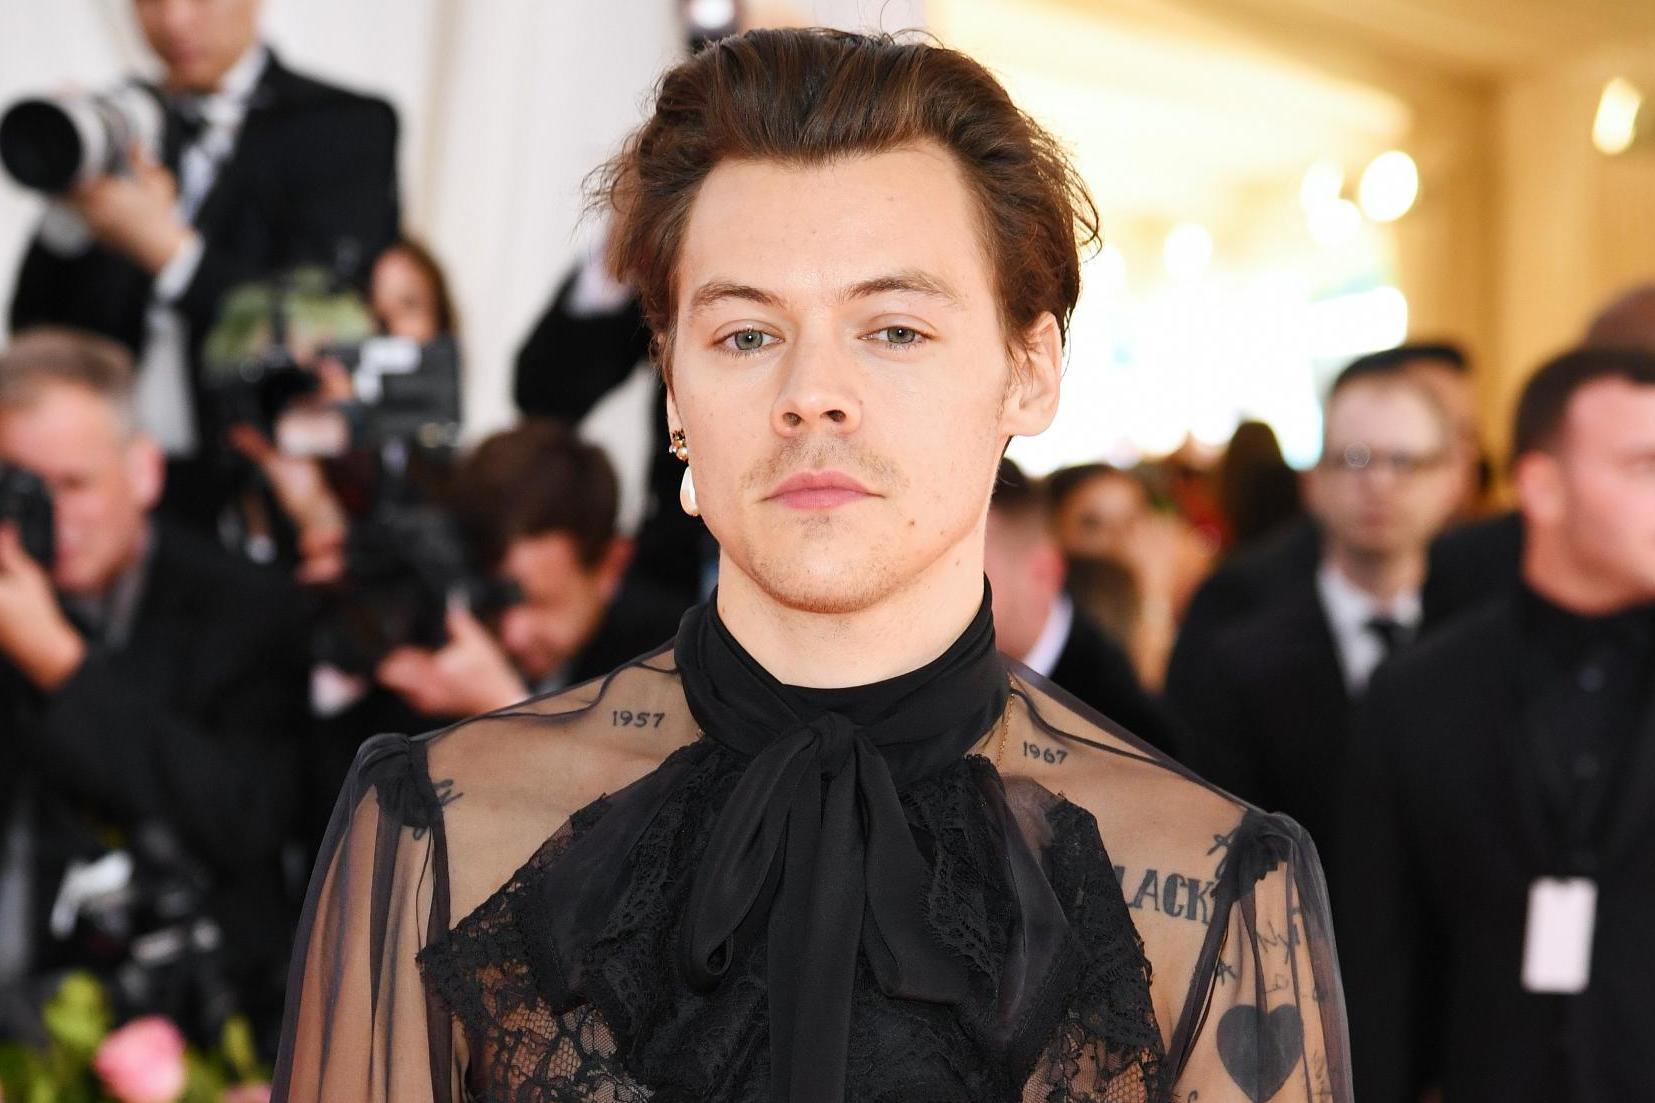 Harry Styles appears on cover of Rolling Stone to talk 'sex, psyched…